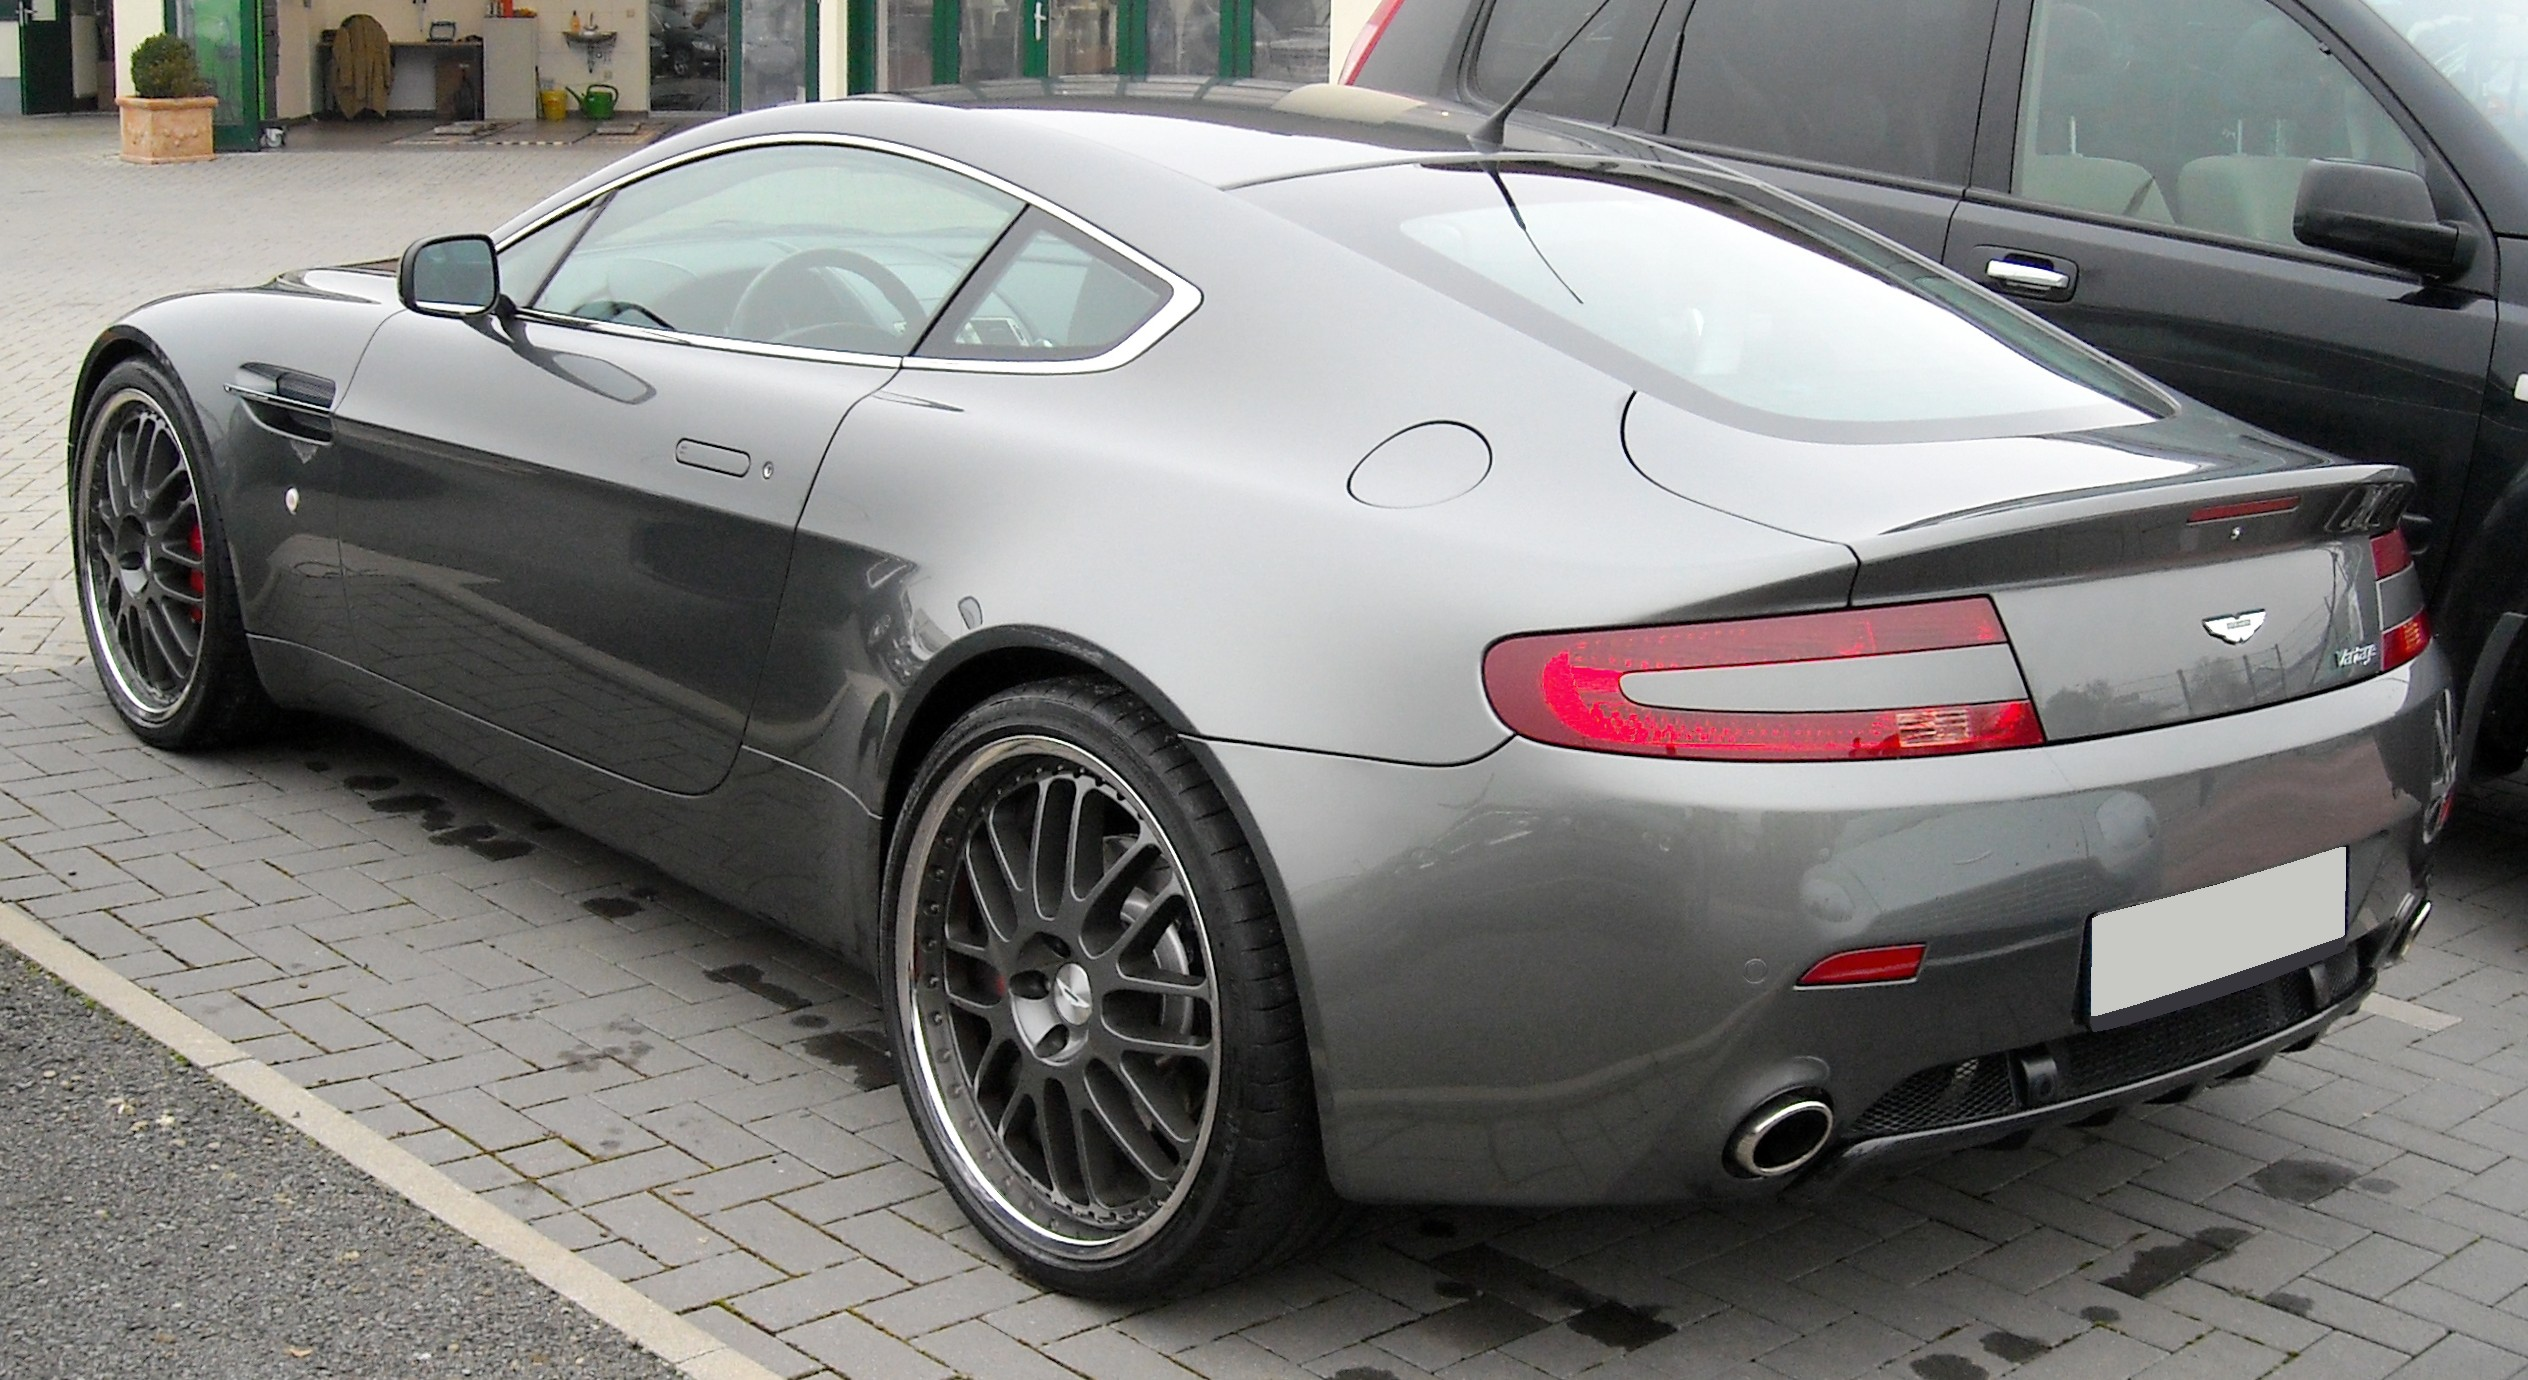 File Aston Martin V8 Vantage Rear 20081201 Jpg Wikimedia Commons